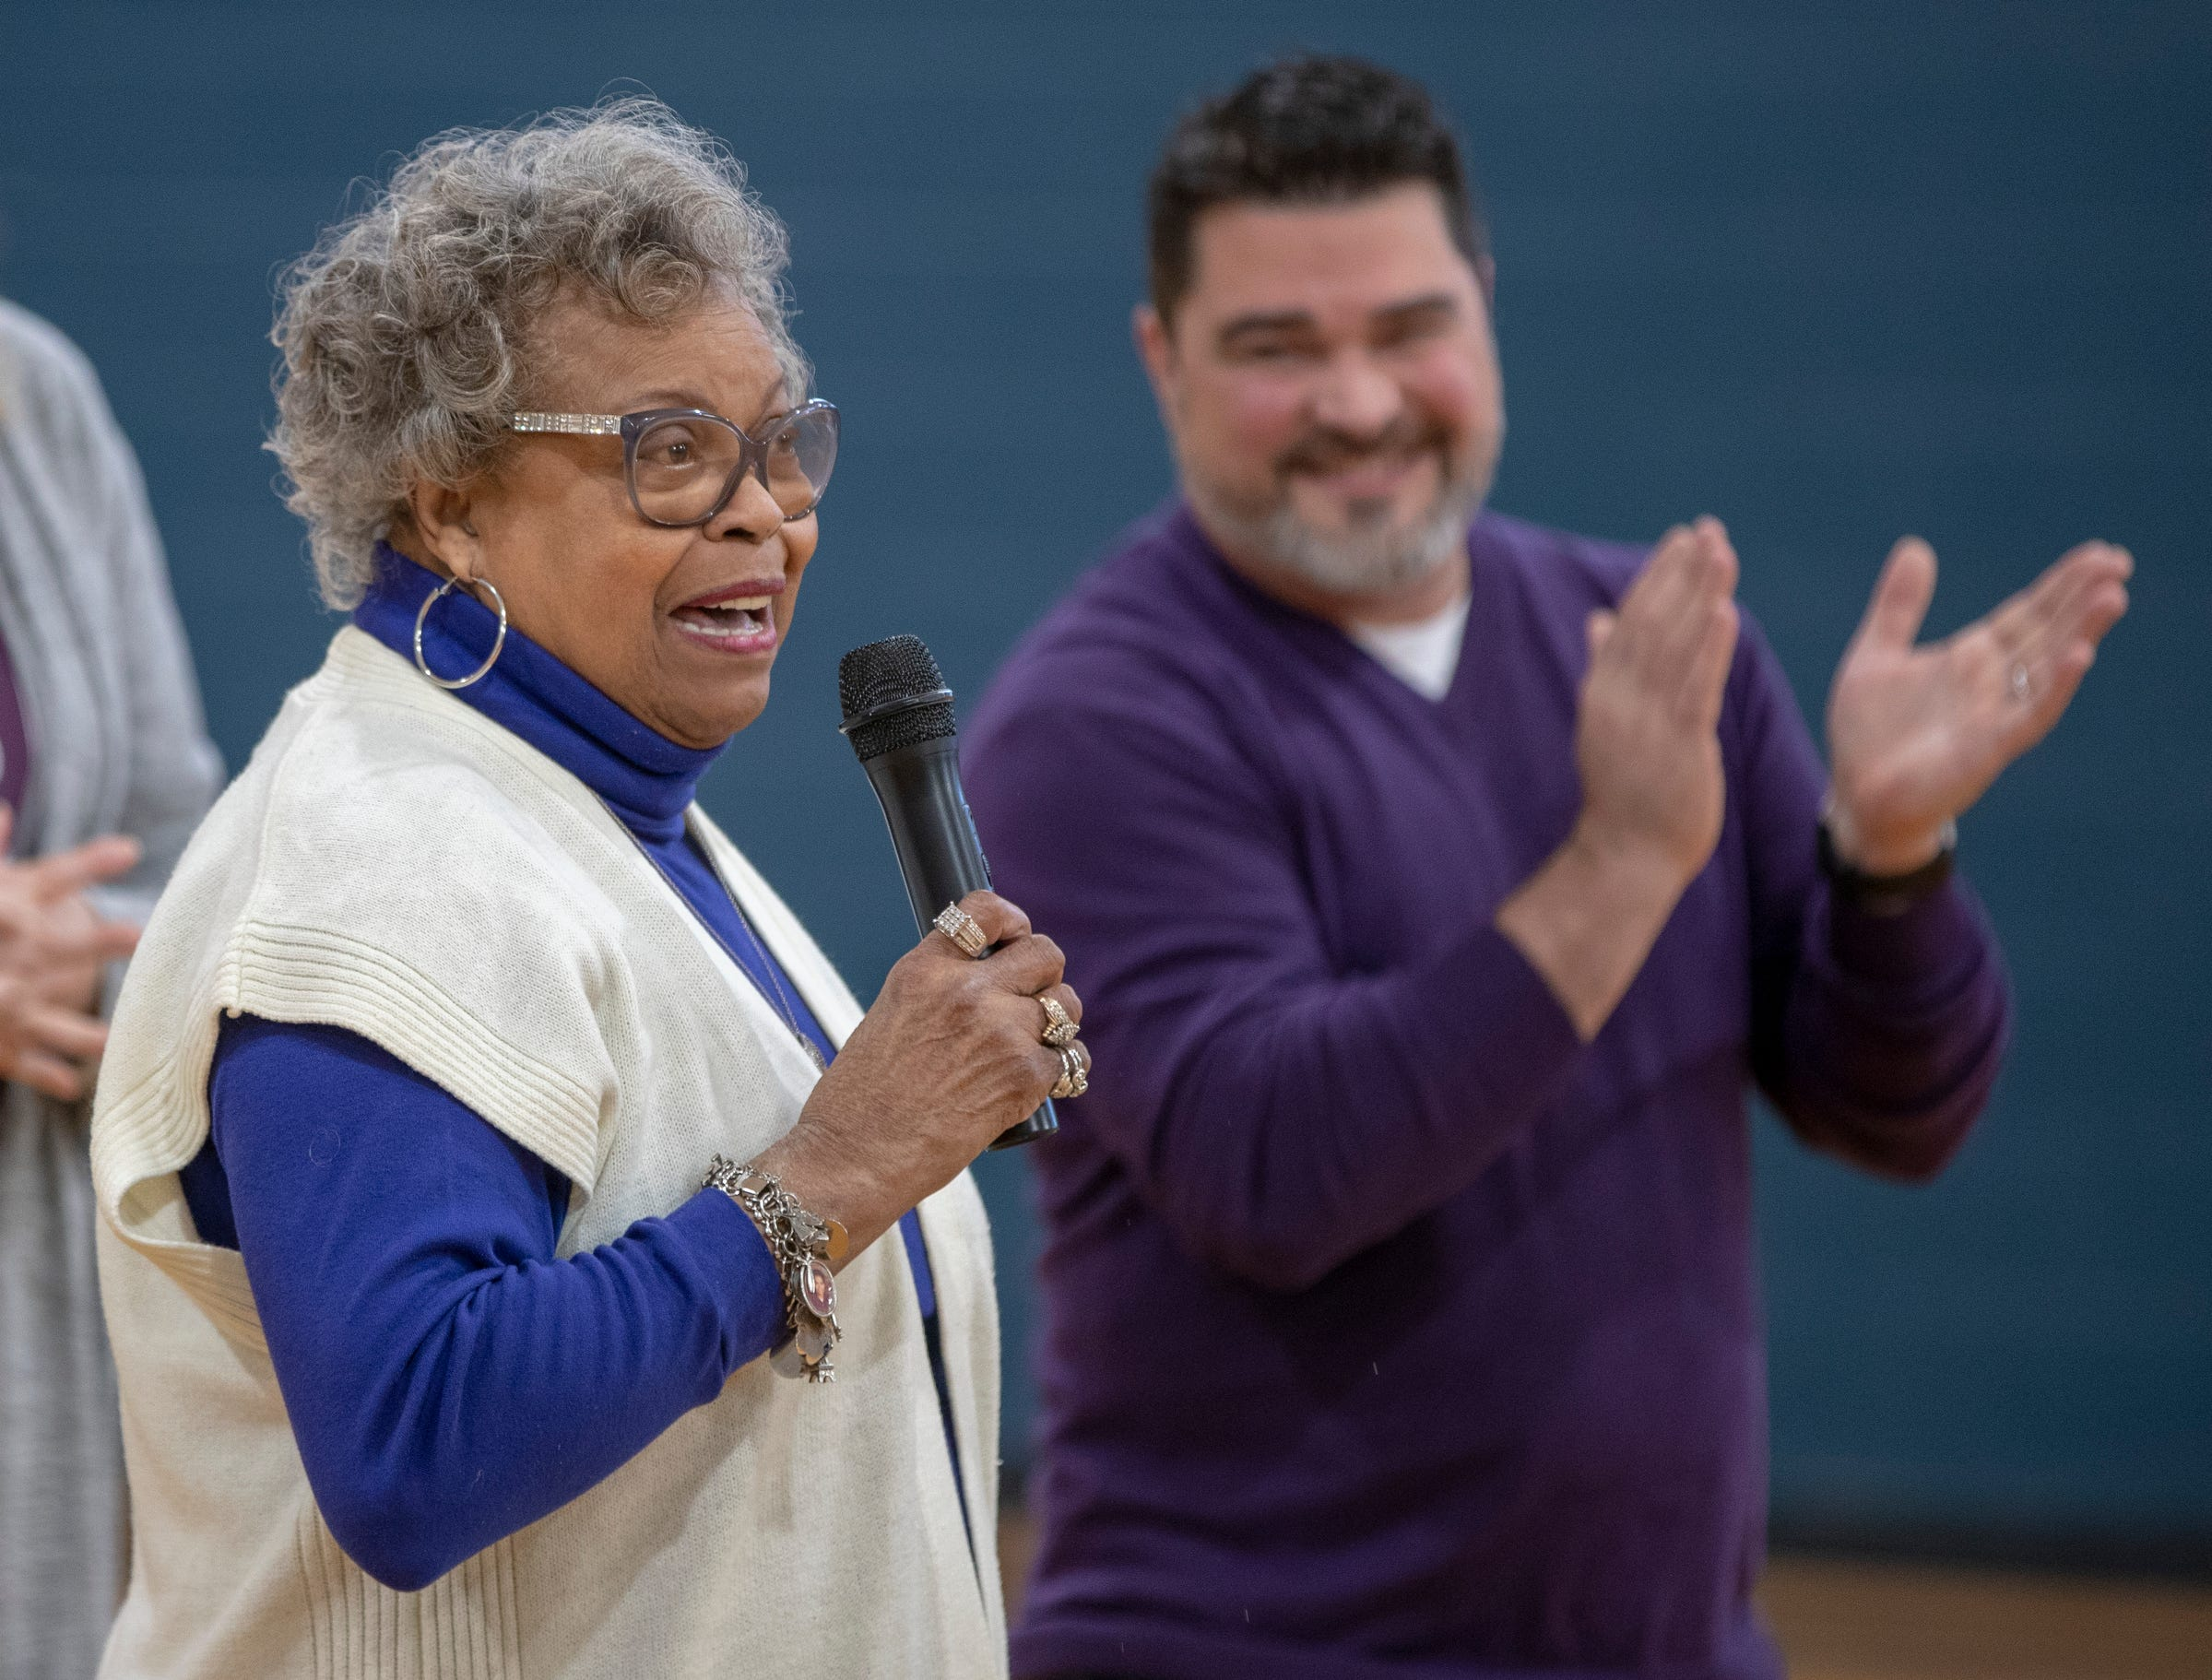 Frankie Casel, President of the Friends of Douglass, speaks during the day's dedication of the remodel of Frederick Douglass Park, Indianapolis, Monday, Jan. 21, 2019.